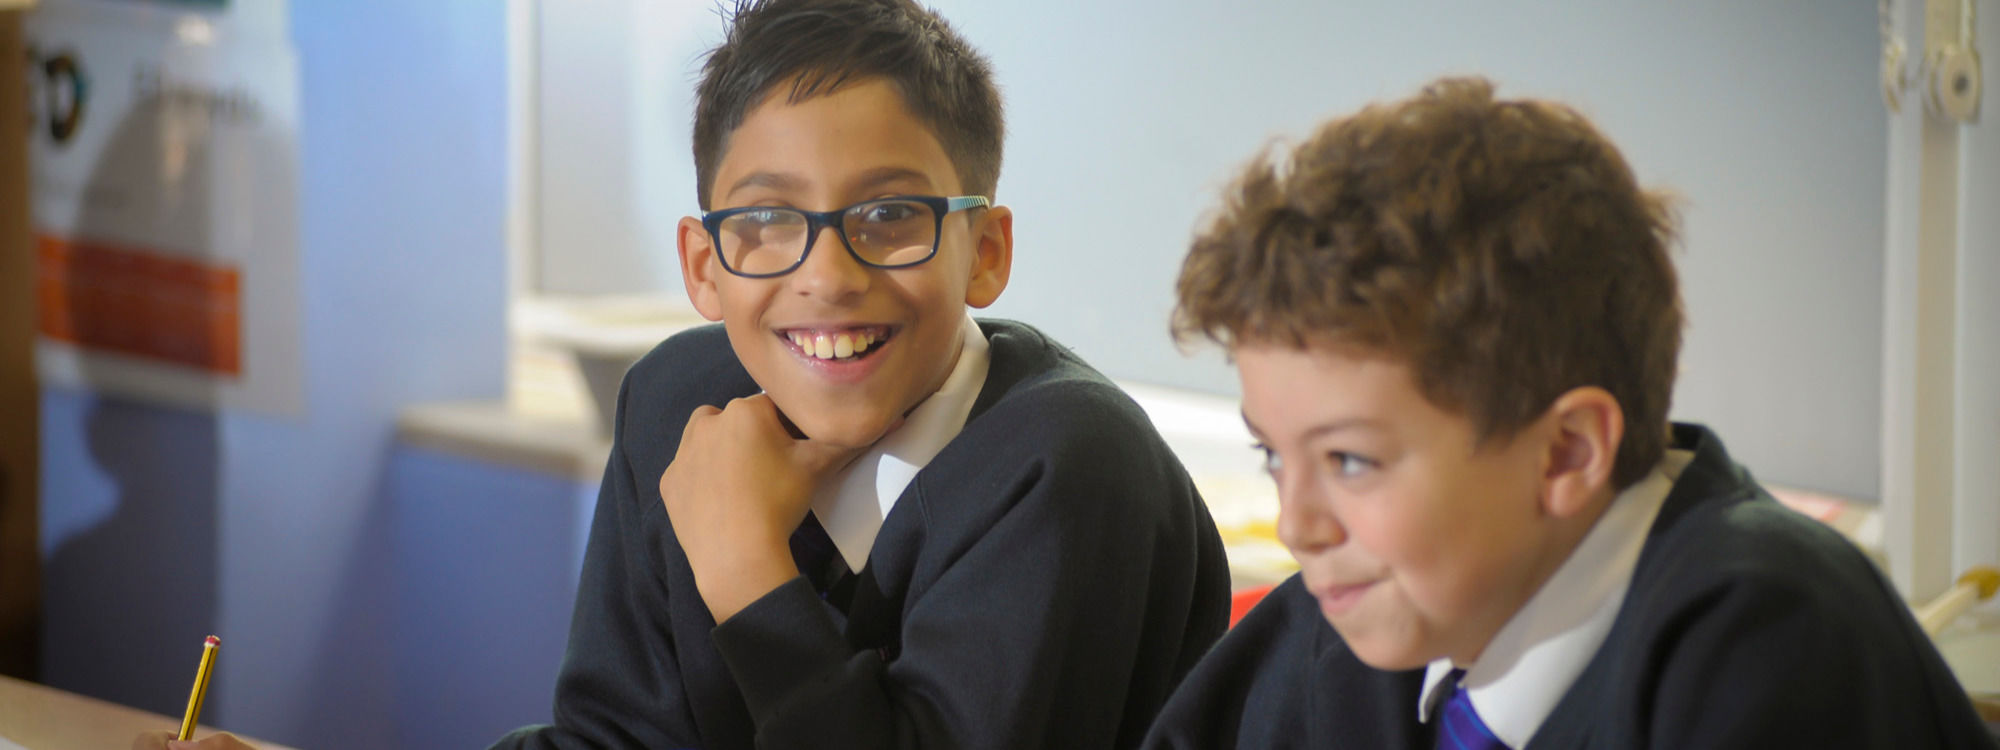 Brownmead academy17